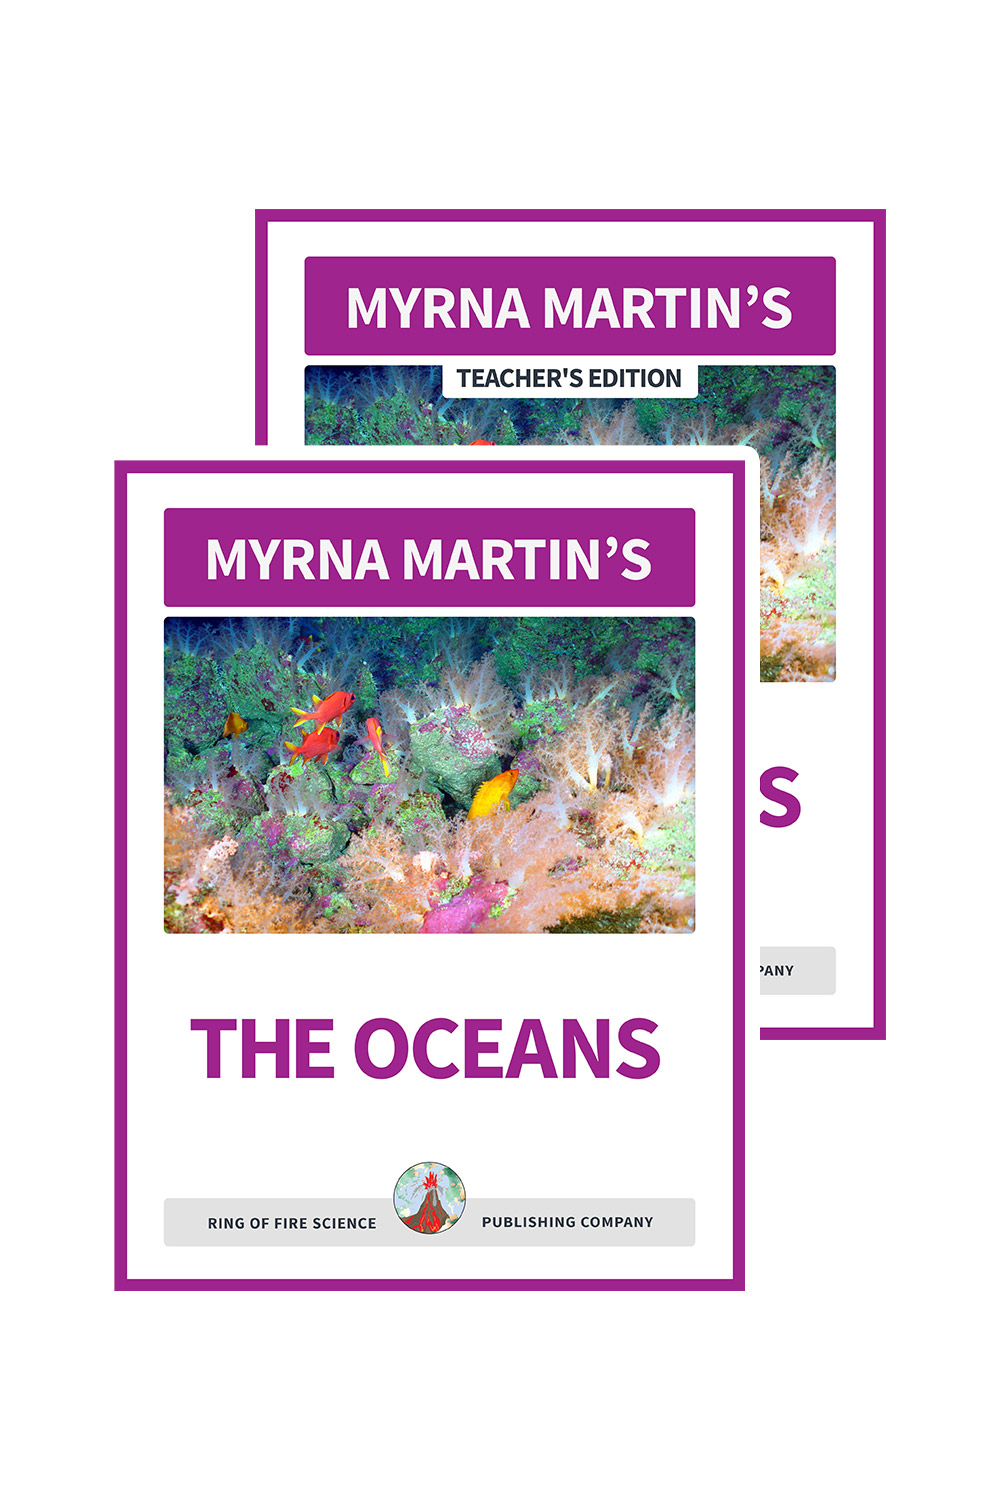 The Oceans school eBook with Teacher's Edition by Myrna Martin